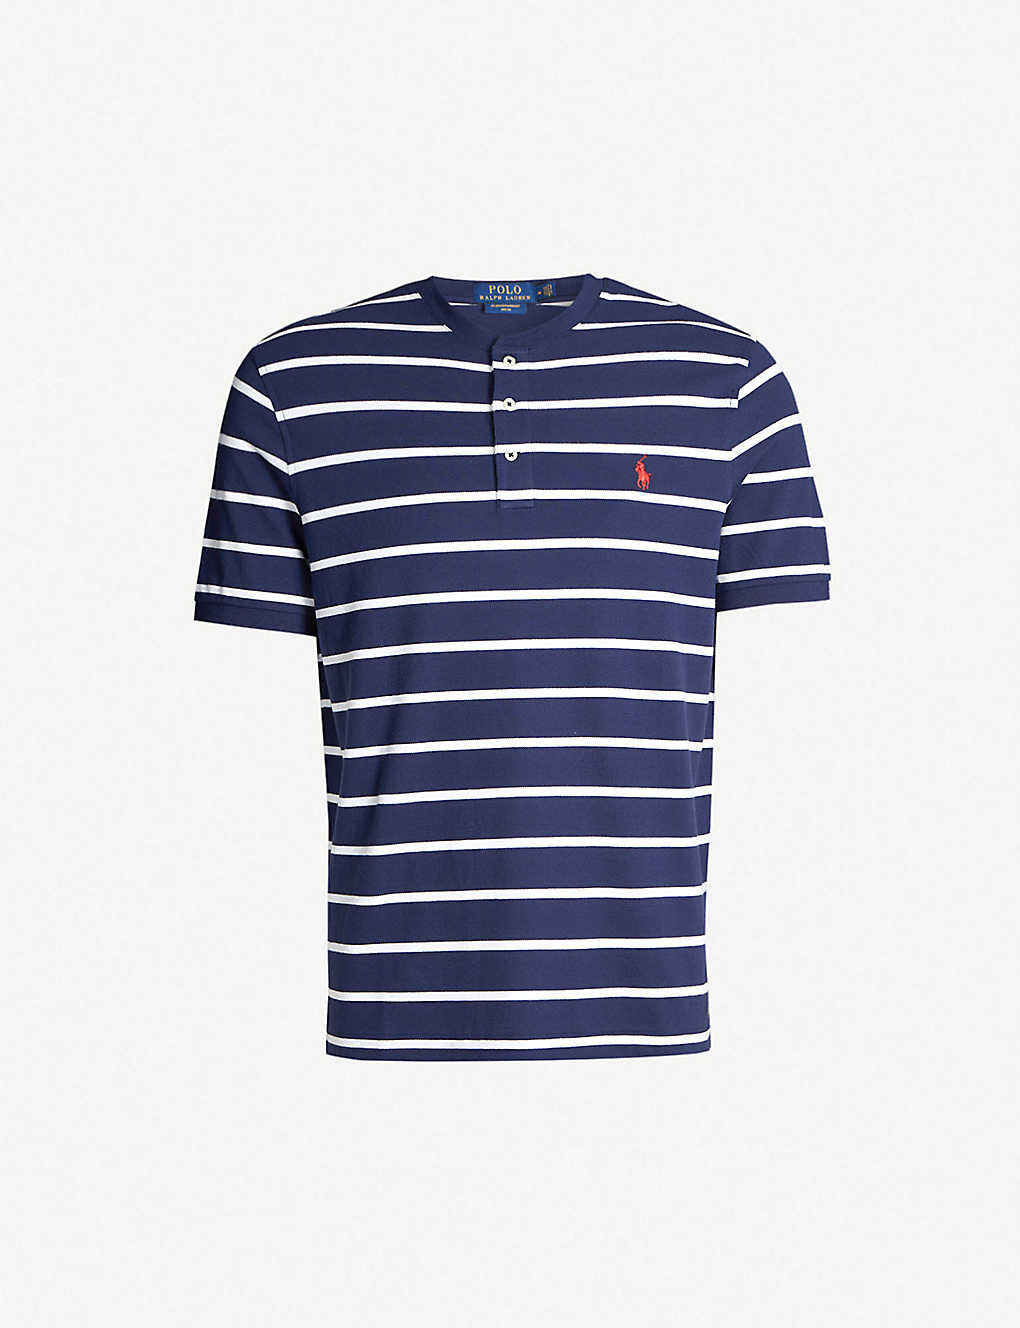 7464e480 Logo-embroidered striped cotton Henley shirt - Newport navywhite ...